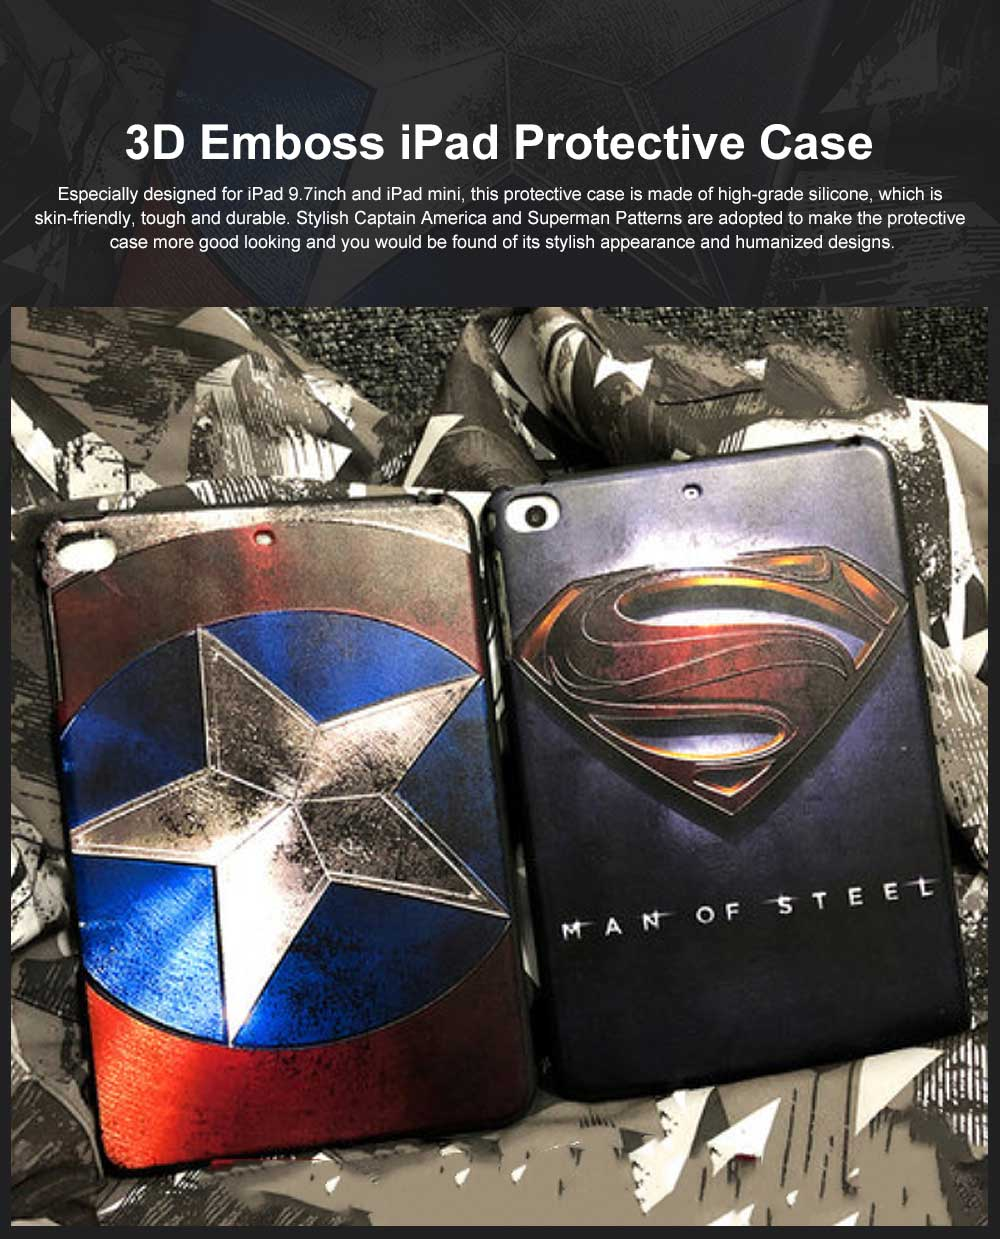 Lightweight Creative Pattern iPad Protective Case, Skin-friendly Comfortable 3D Emboss Protection Cover for iPad 9.7 inch Mini 1 2 3 4 5 0